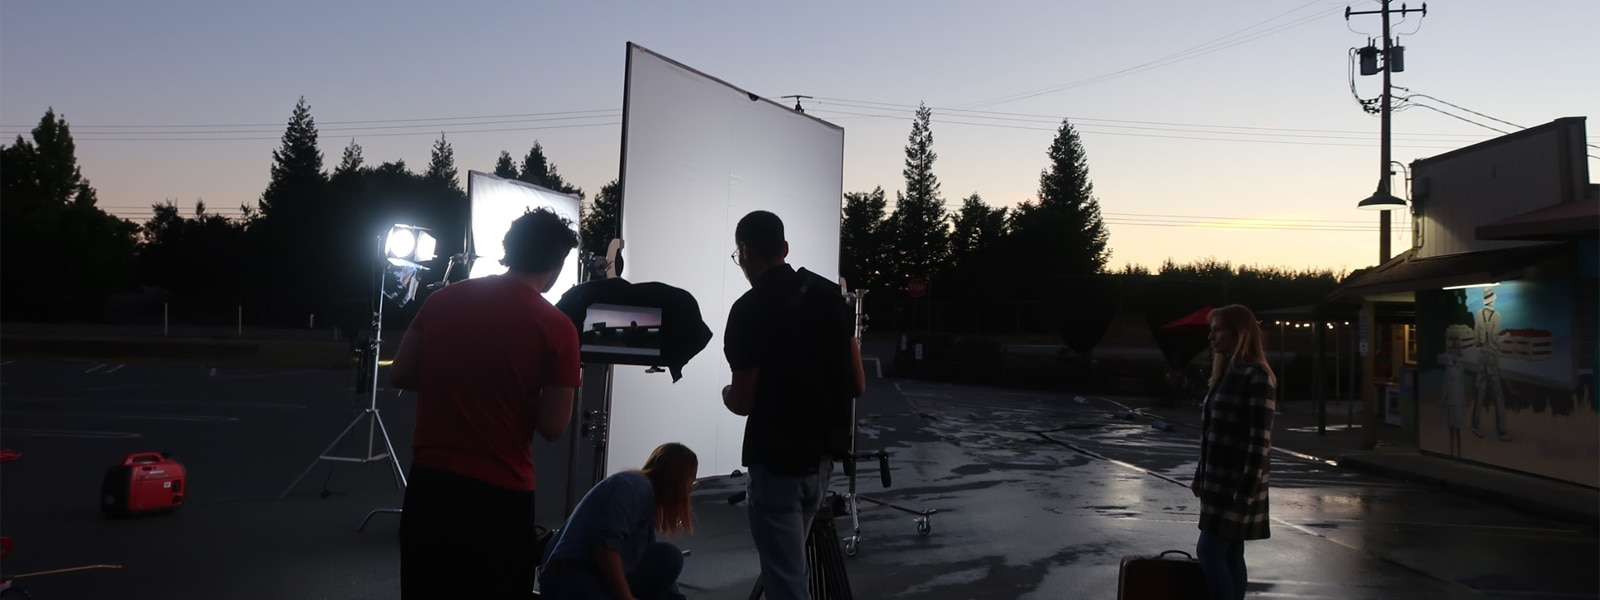 Shooting at dusk with PXW-FX9